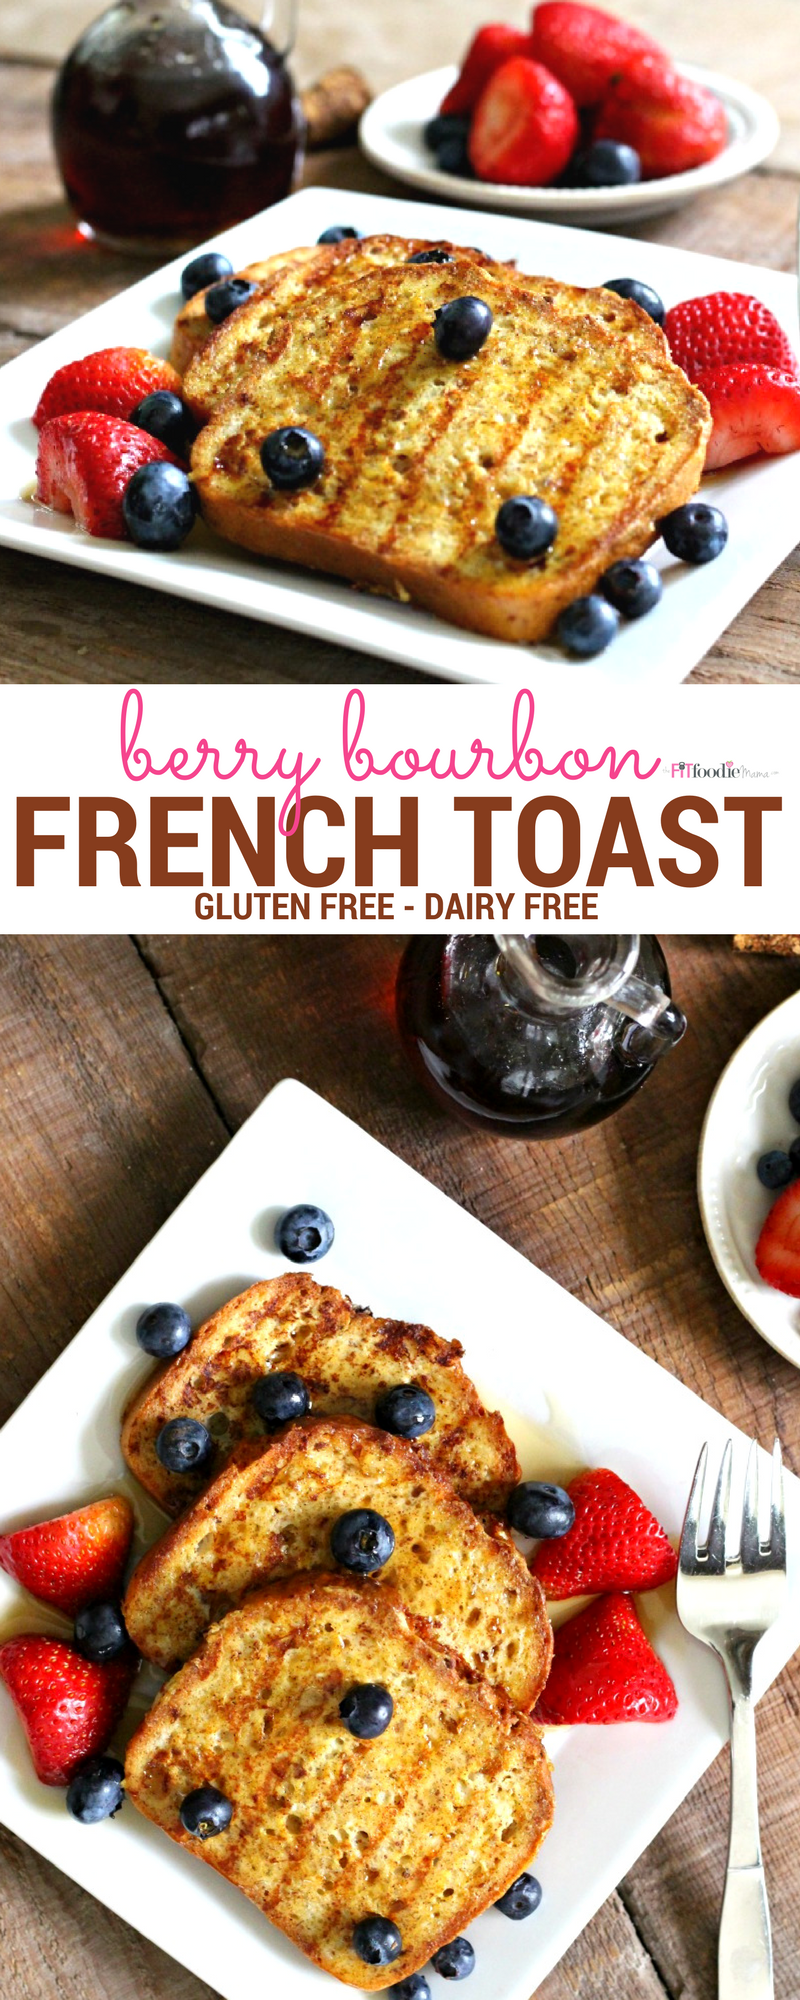 Berry Bourbon Gluten Free and Dairy Free French Toast!